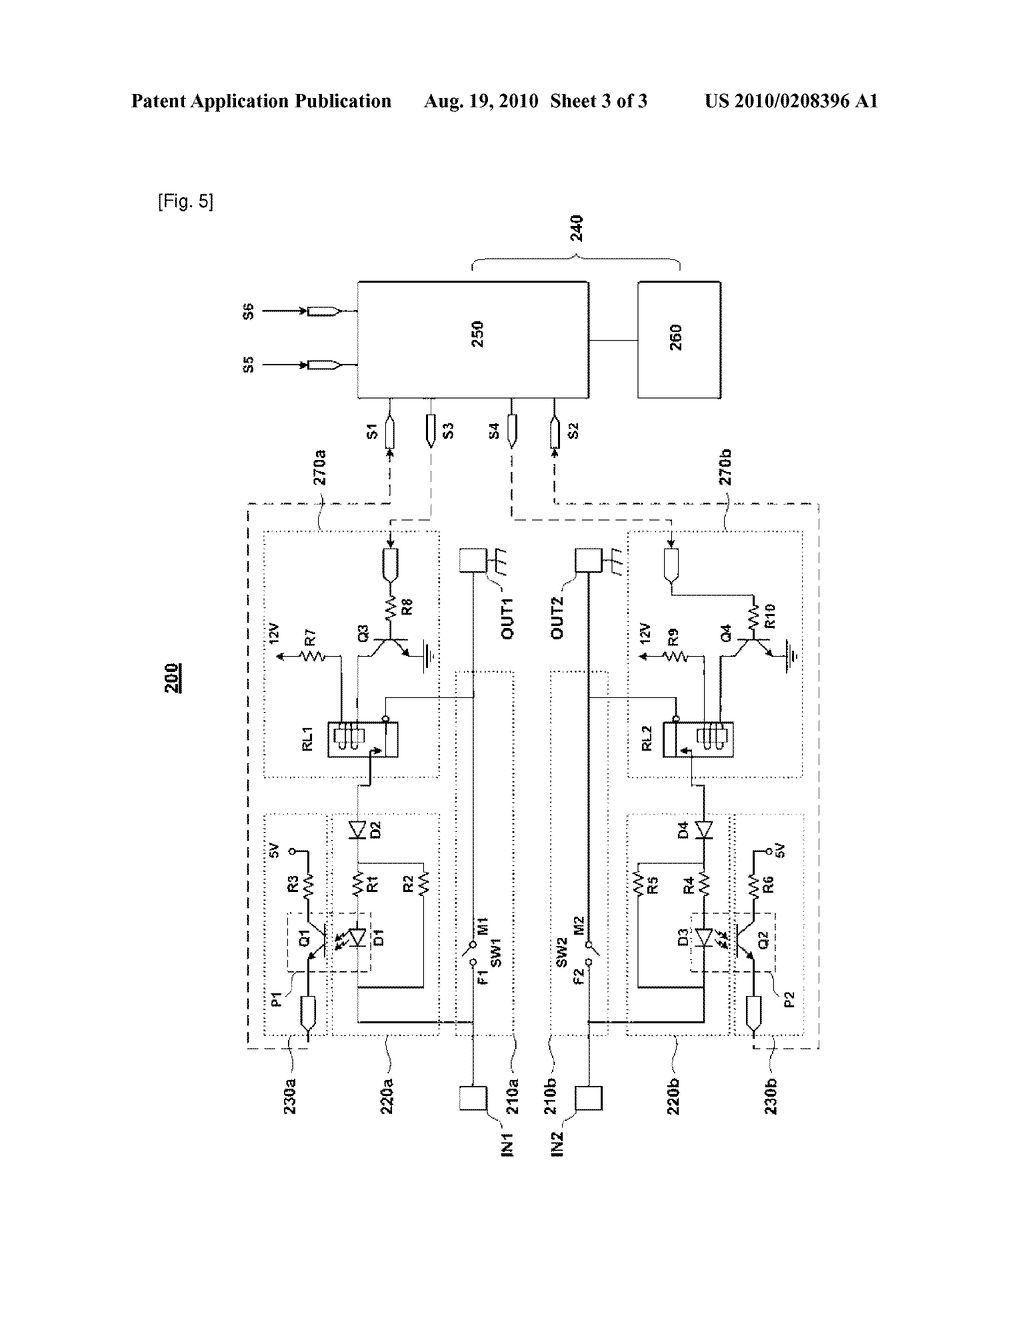 Earth leakage circuit breaker with function for detecting reverse earth leakage circuit breaker with function for detecting reverse leakage current diagram schematic and image 04 ccuart Images